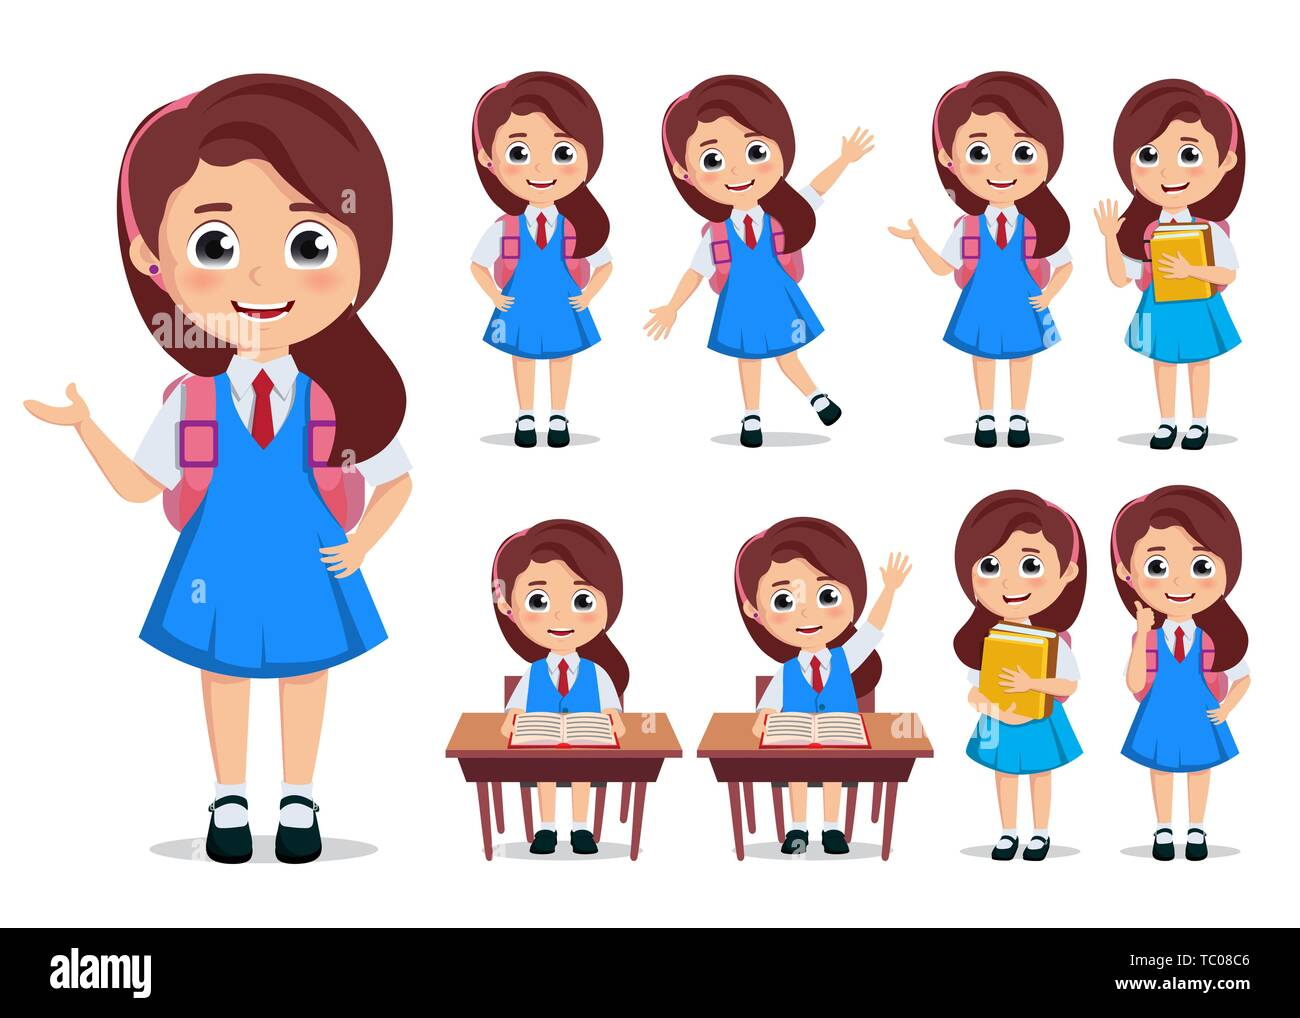 Student Girl Vector Character Set School Kids Cartoon Characters Wearing Uniform And Backpack With Various Pose And Gestures While Doing Educational Stock Vector Image Art Alamy